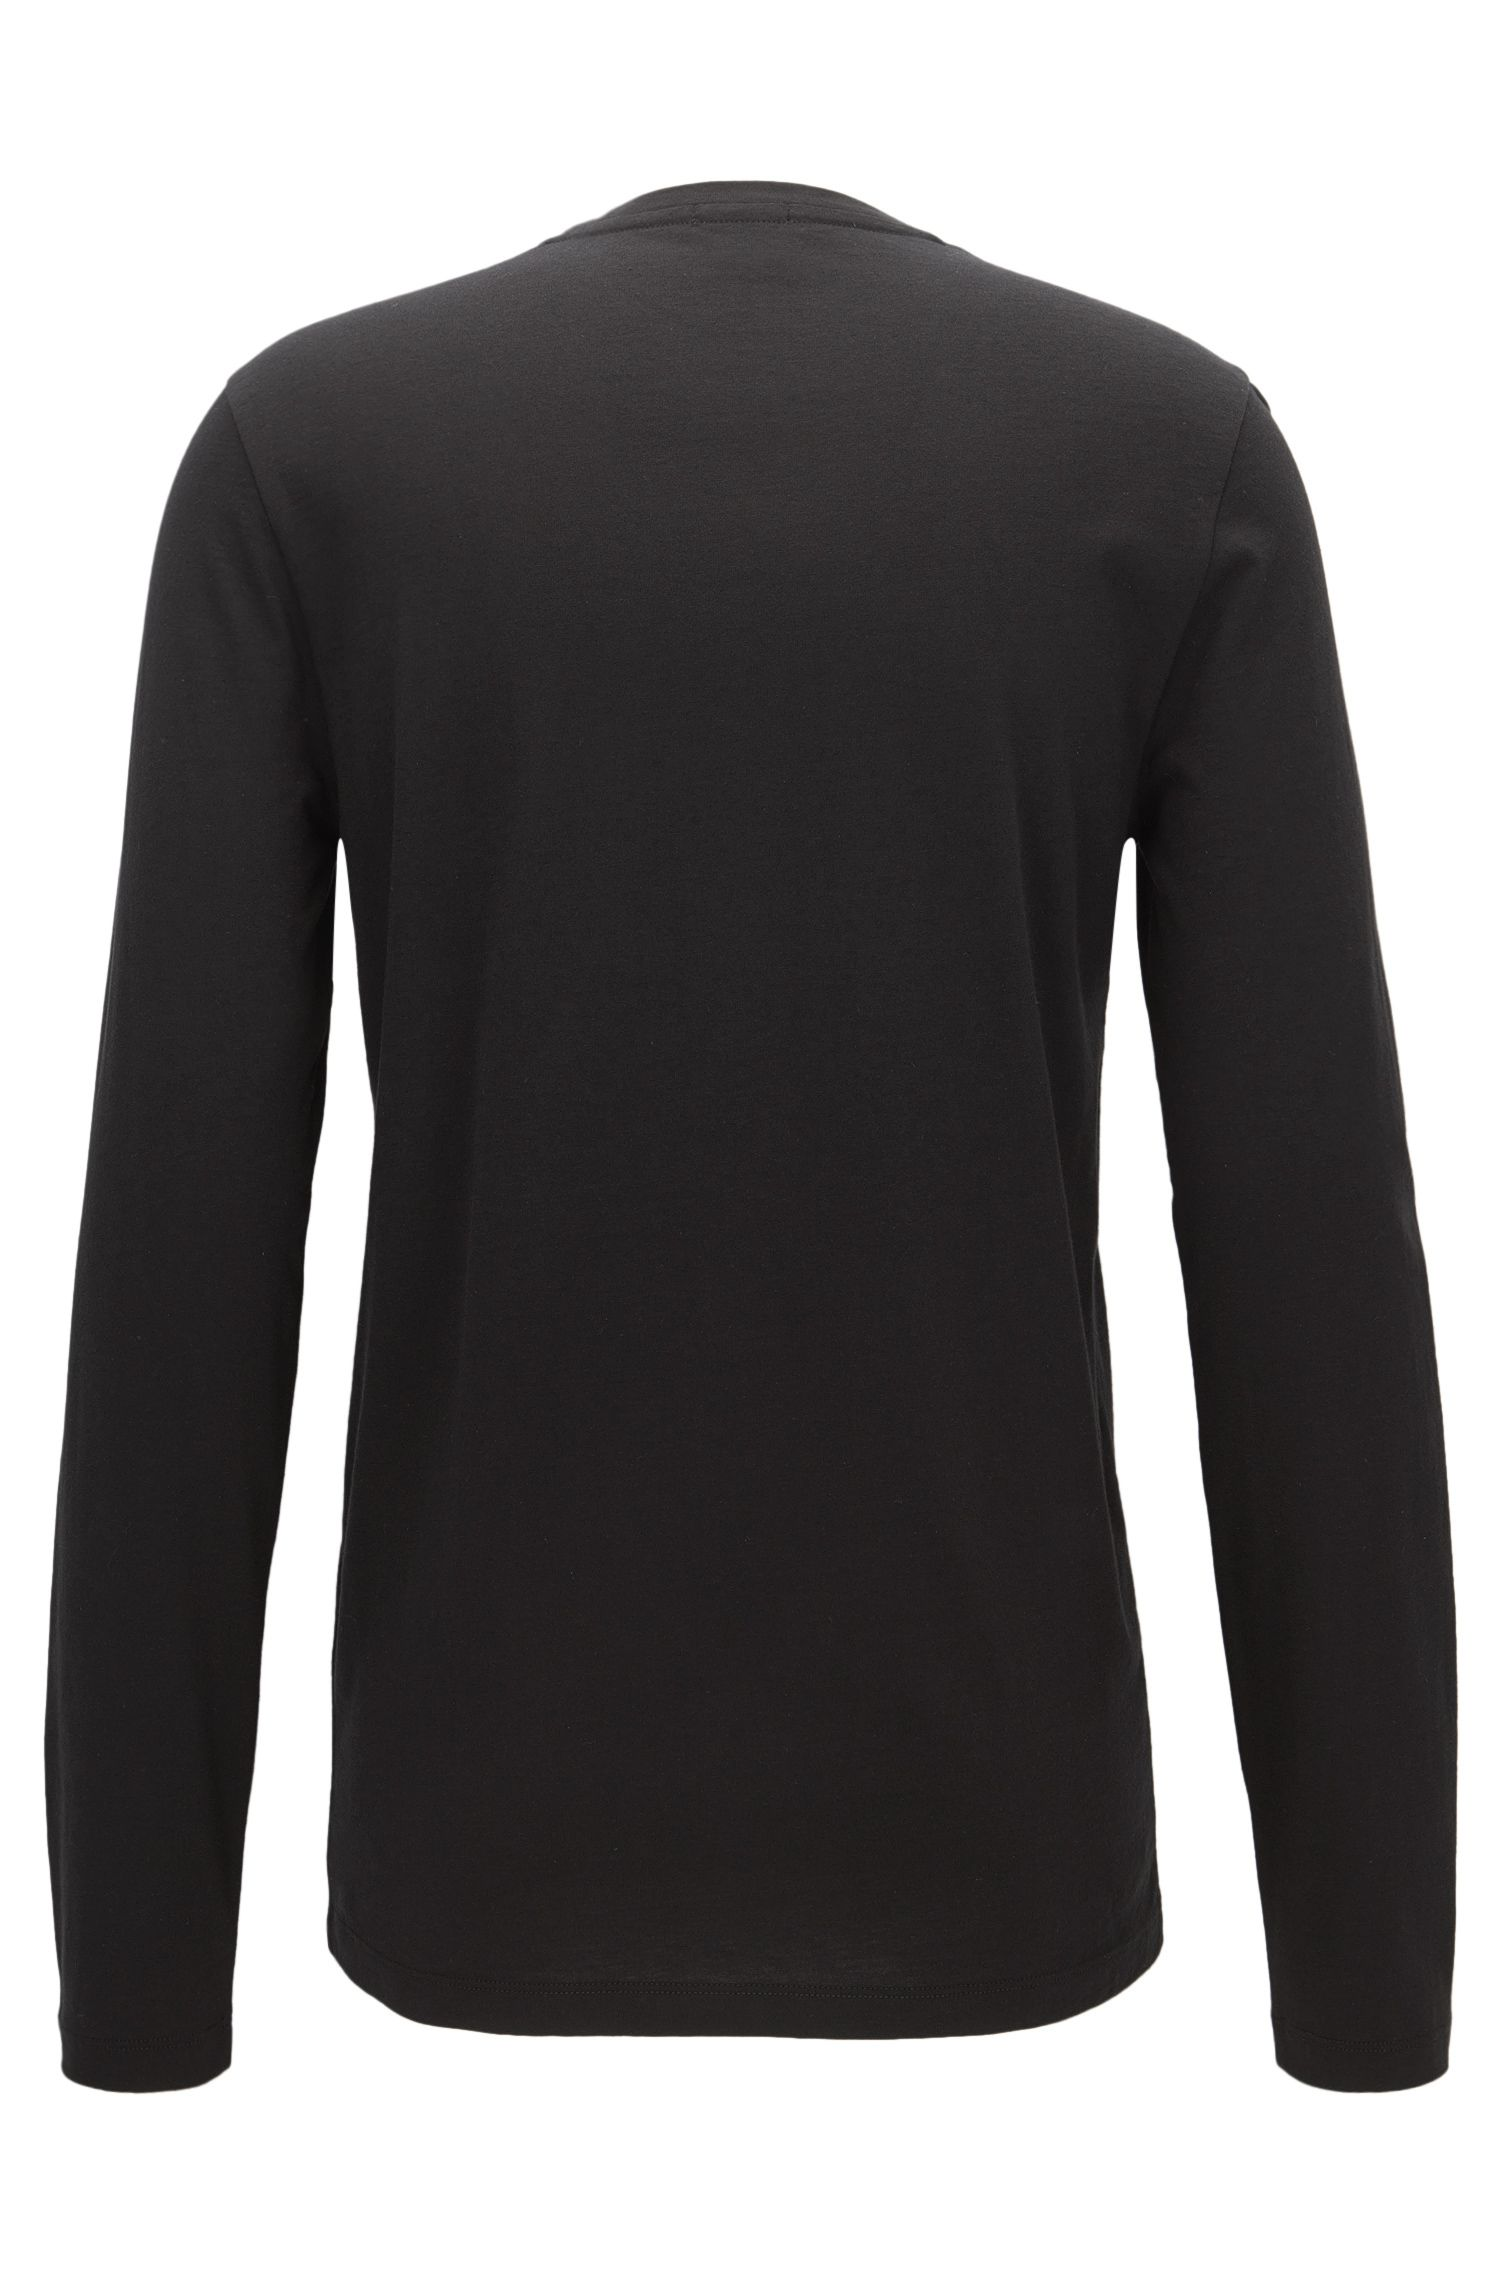 Long-sleeved T-shirt in a cotton blend